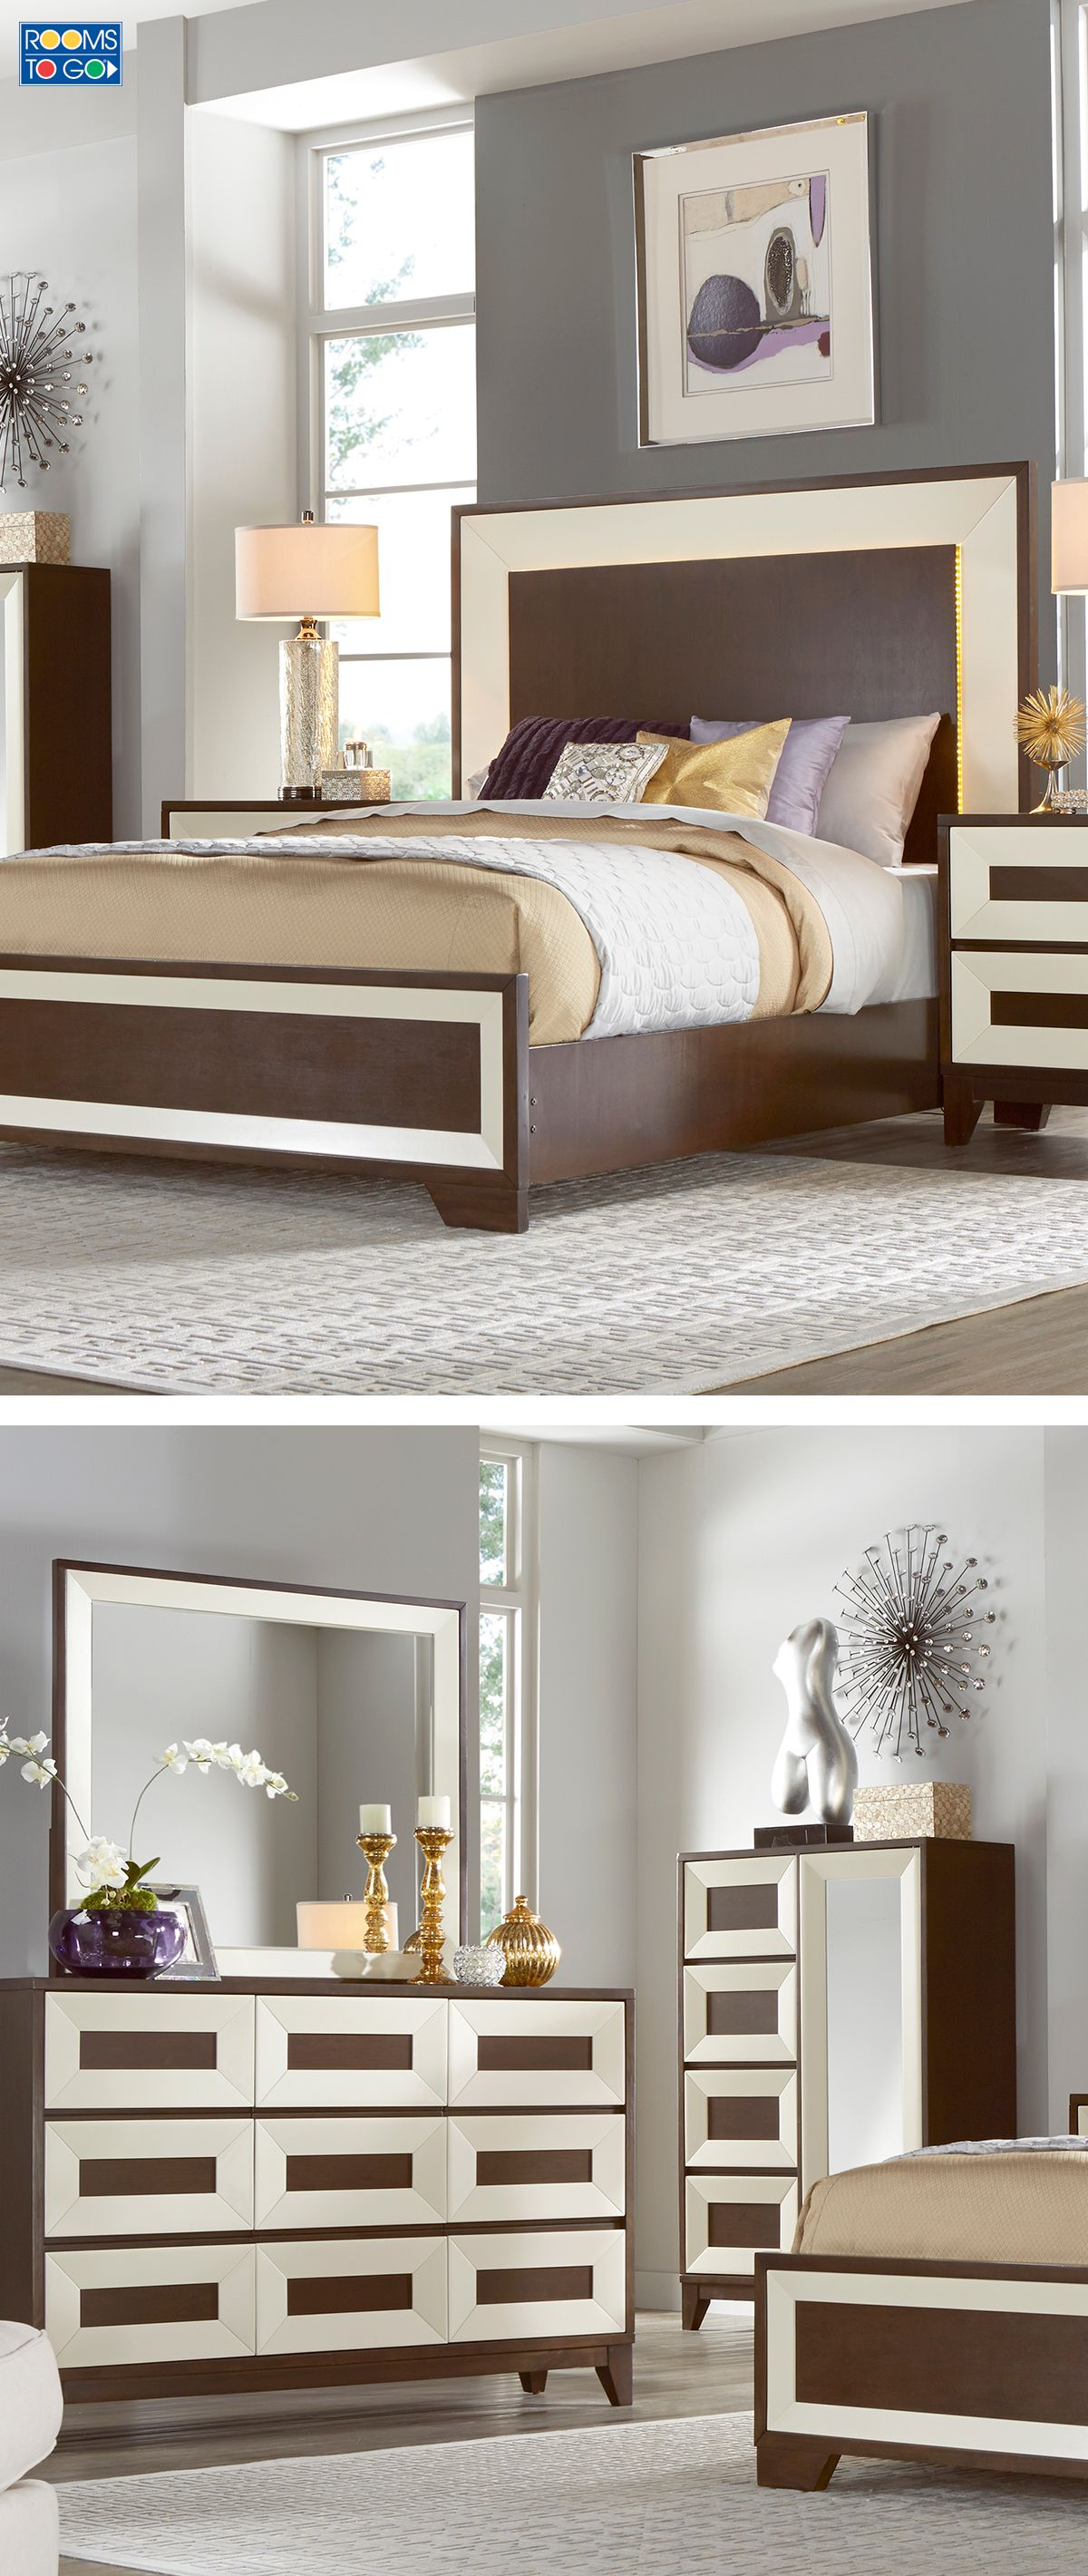 Cozy Up To Contemporary Style With The Sleek Sophisticated Design Of The Sofia Vergara Savona Bedroom Bedroom Sets Queen Bedroom Panel Bedroom Styles